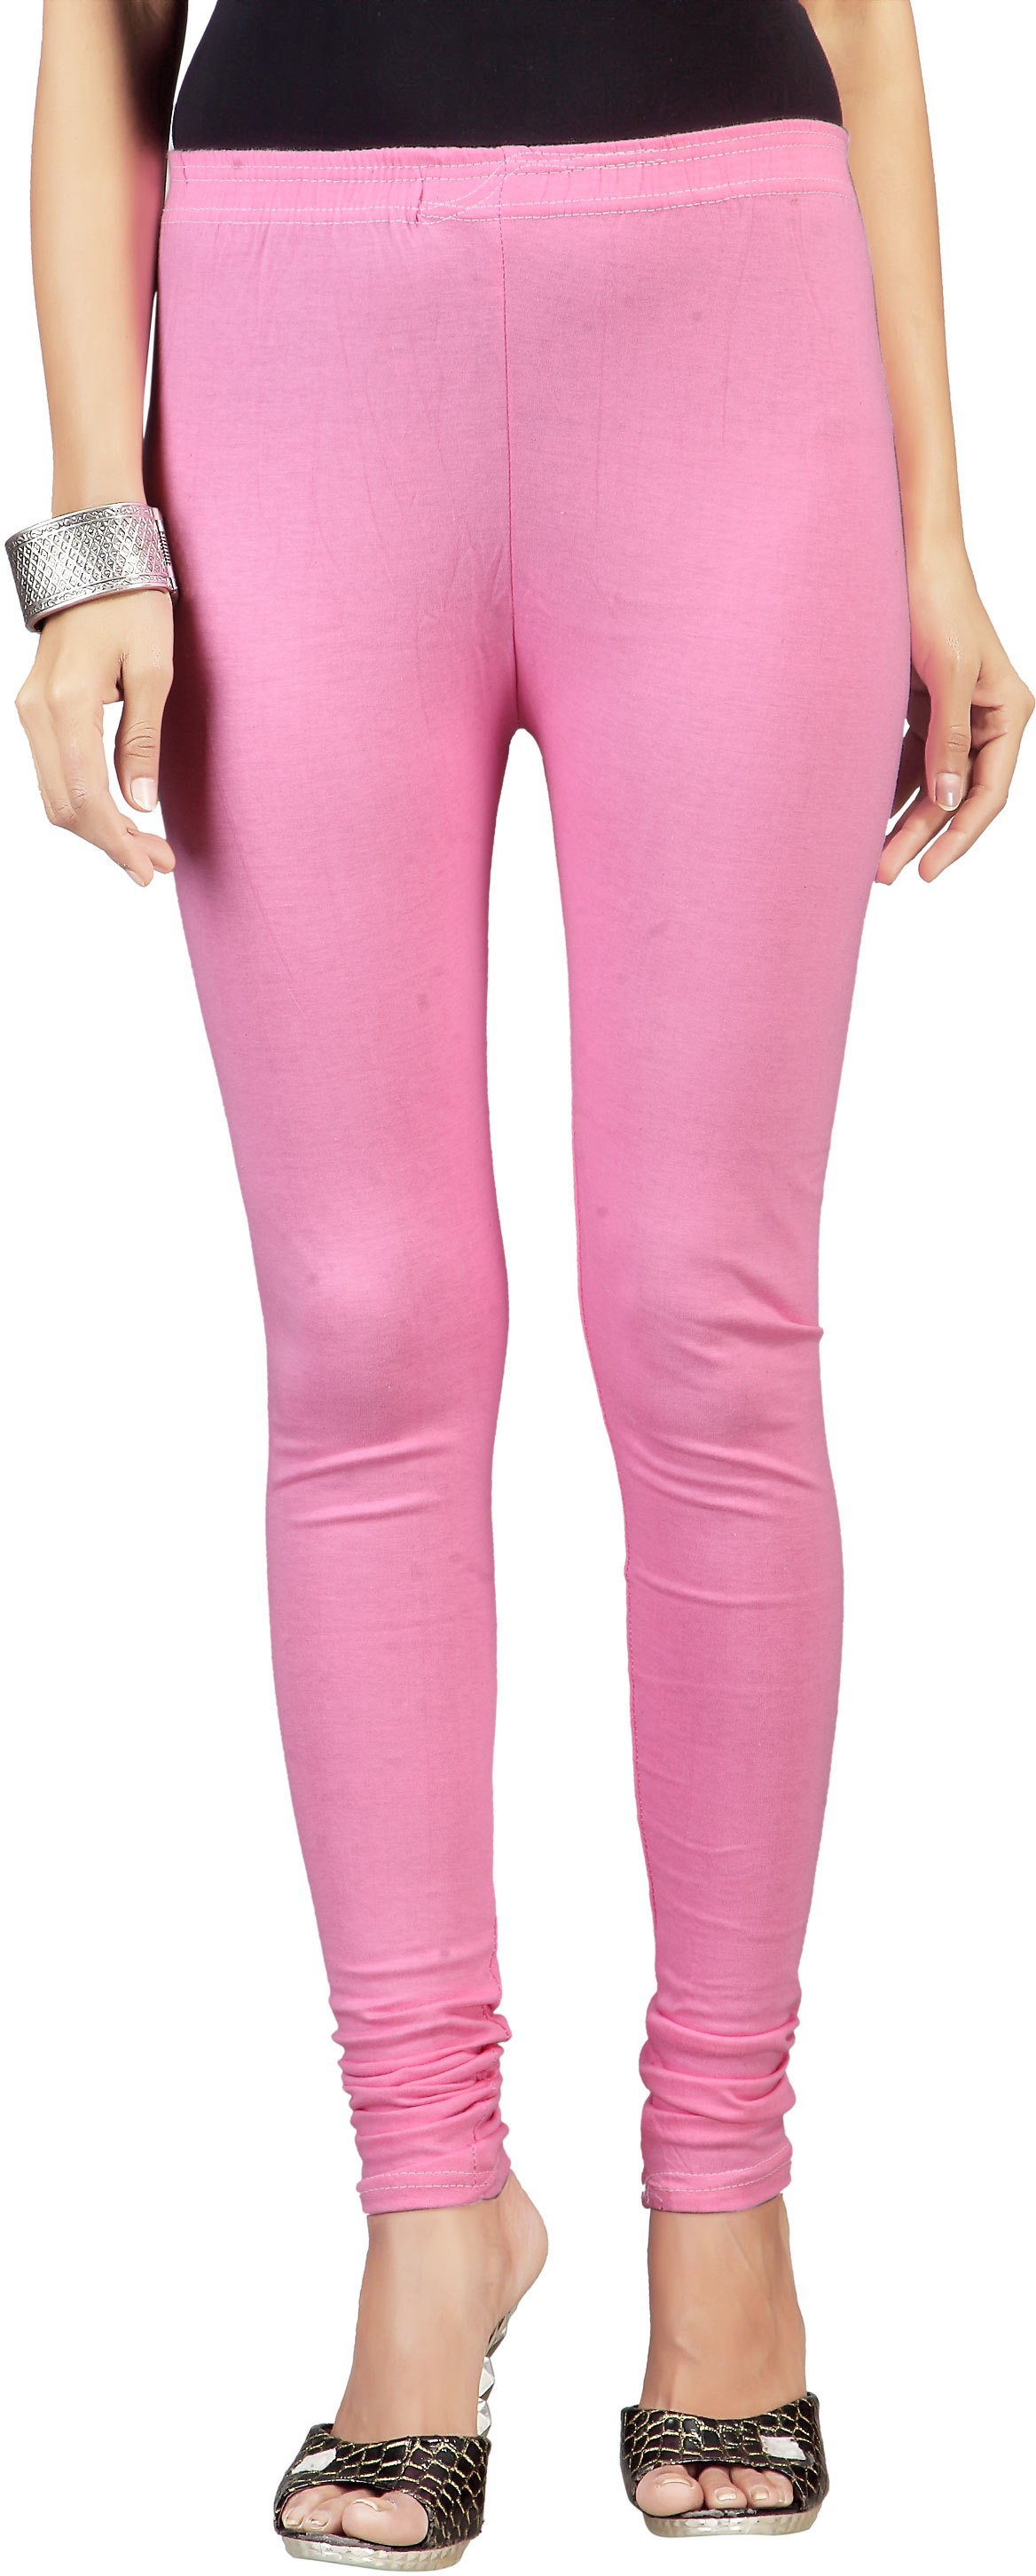 Ambrai Womens Pink Leggings